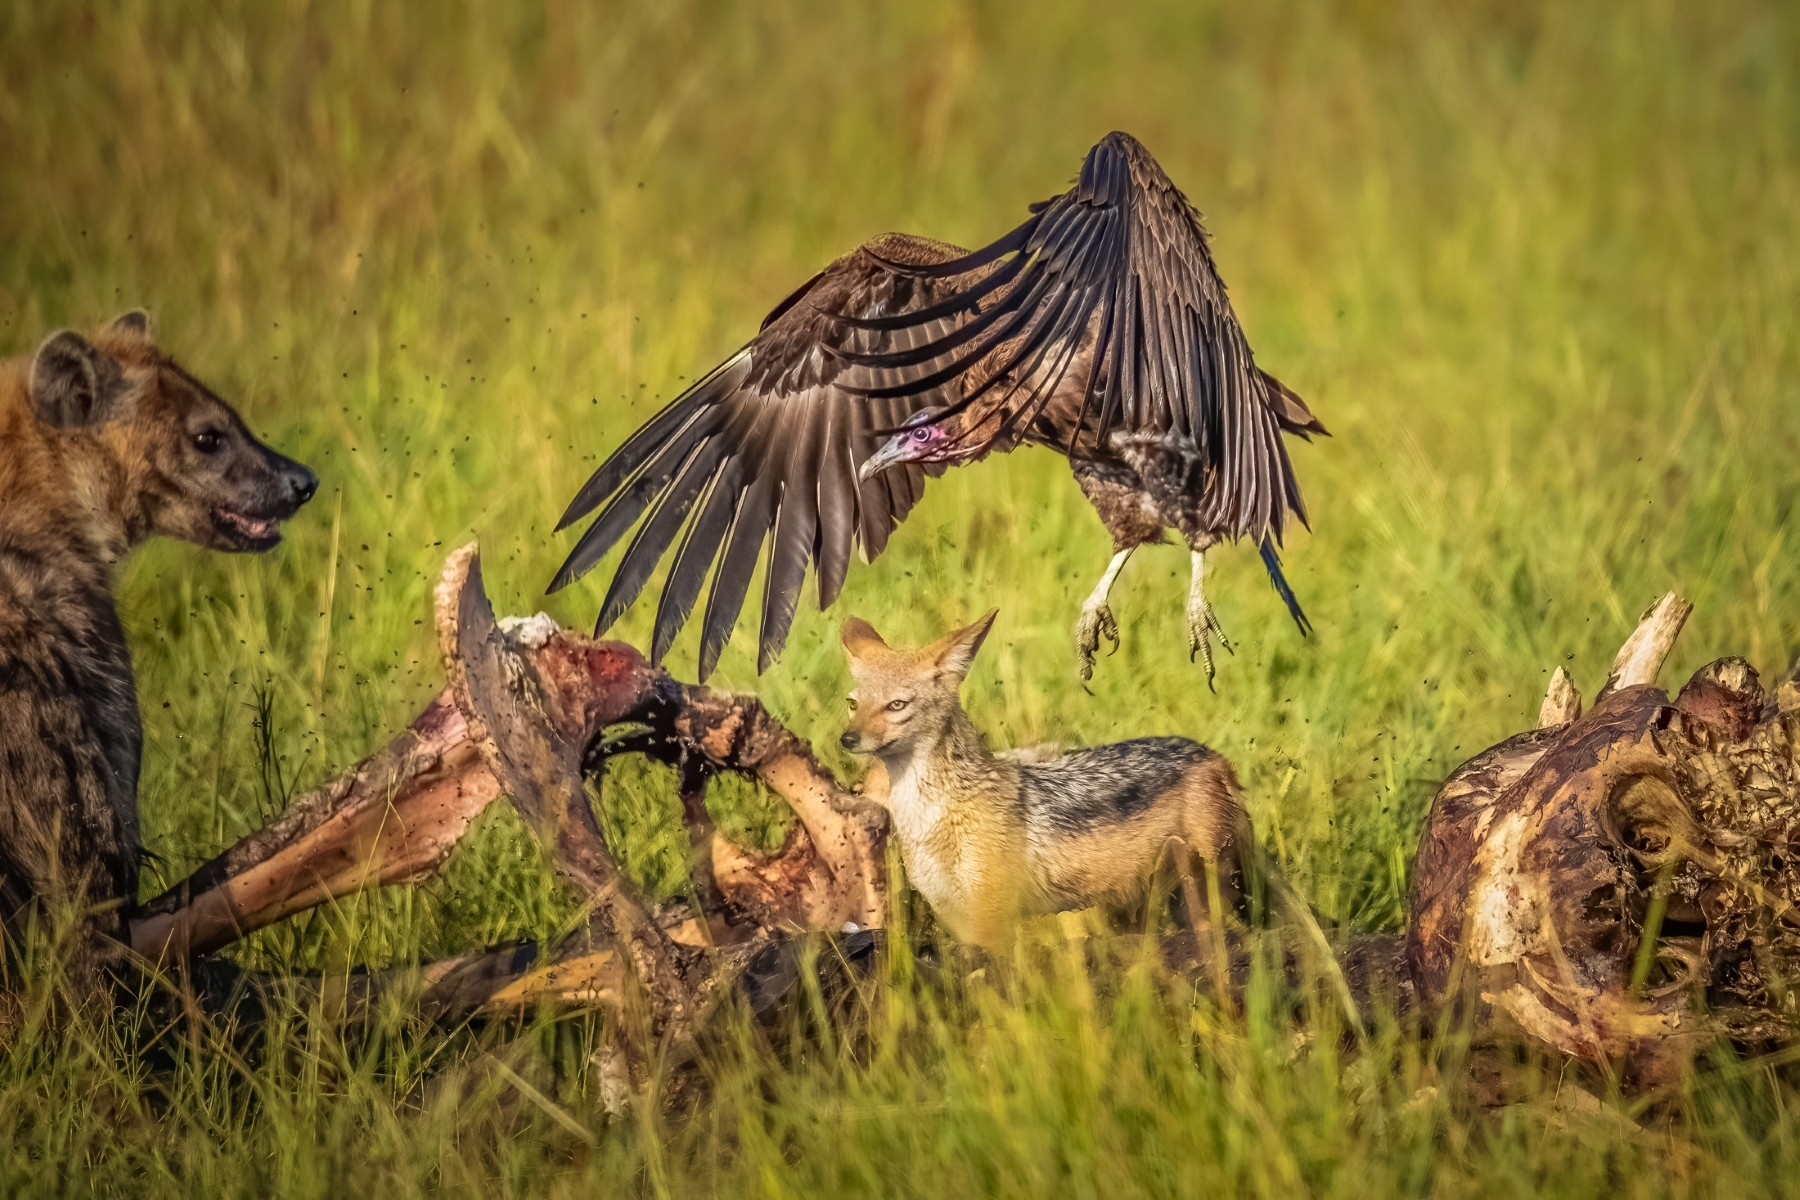 Scavengers-of-Masai-Mara-2_-Hyena-Jackal-and-Vultures-scavenging-on-an-elephant-carcass-here.-NM-Place-by-Rajani-Ramanathan-LV